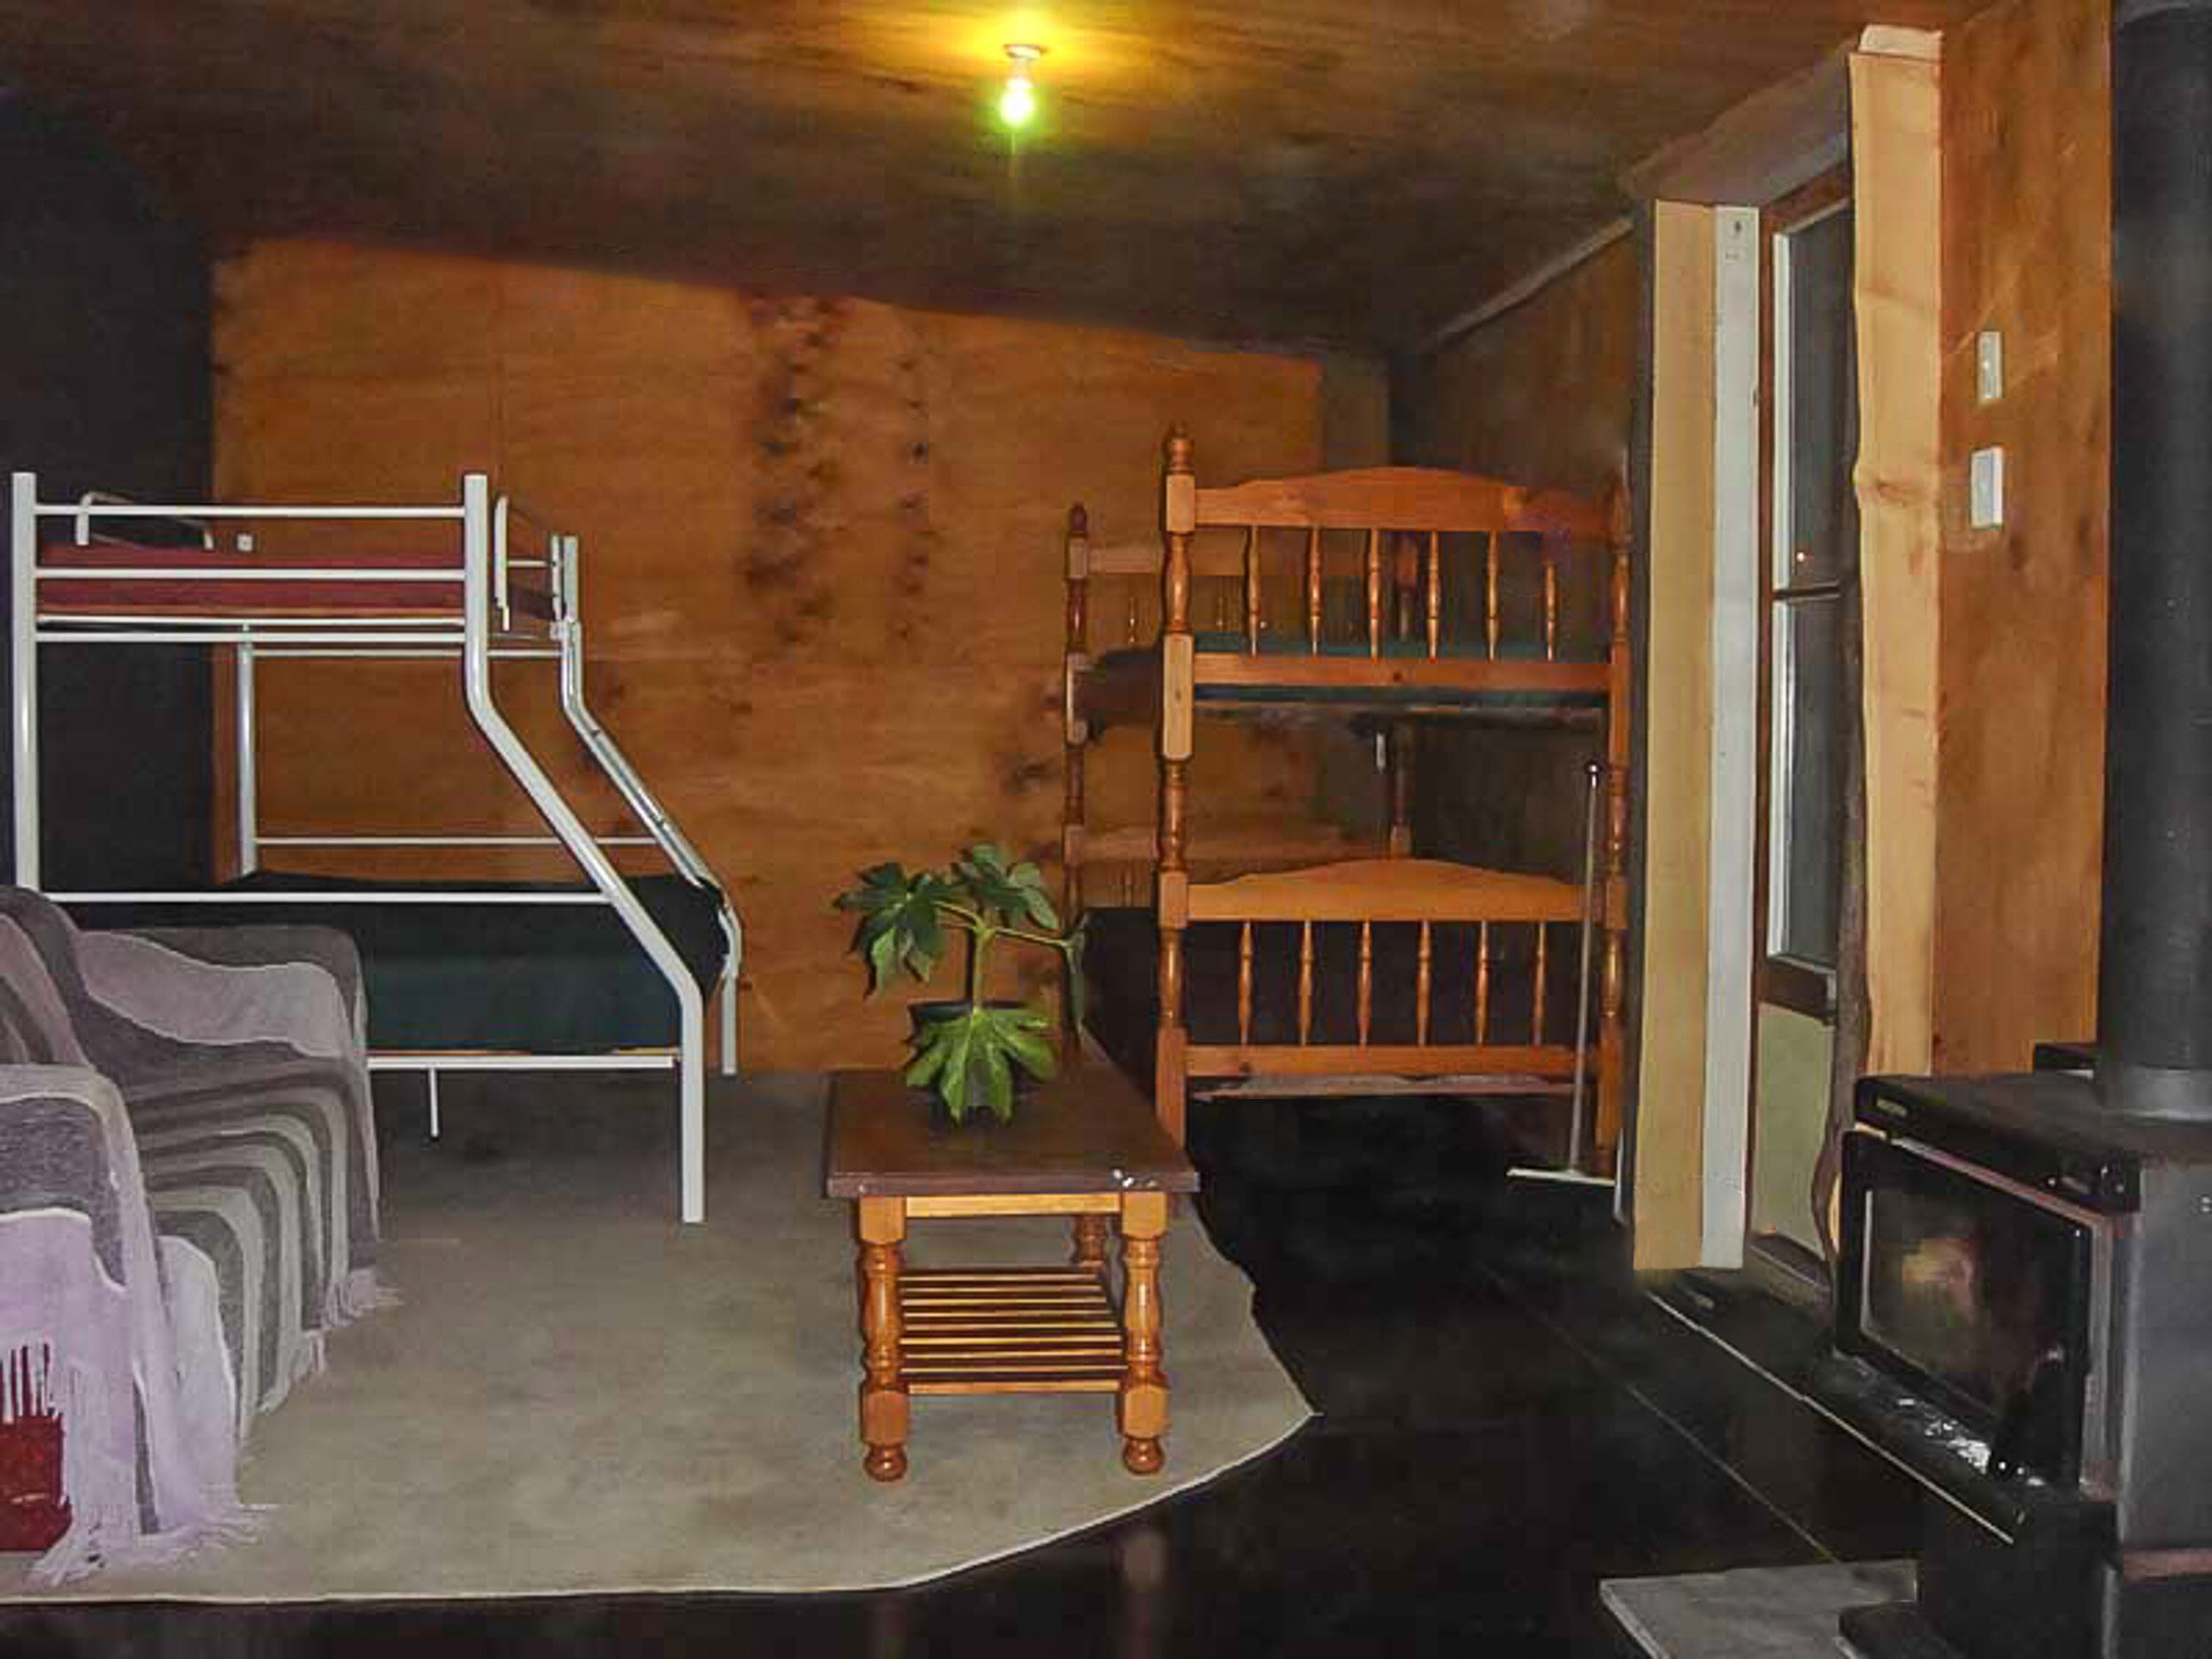 Backpackers lodge - accommodation for up to 11 people.